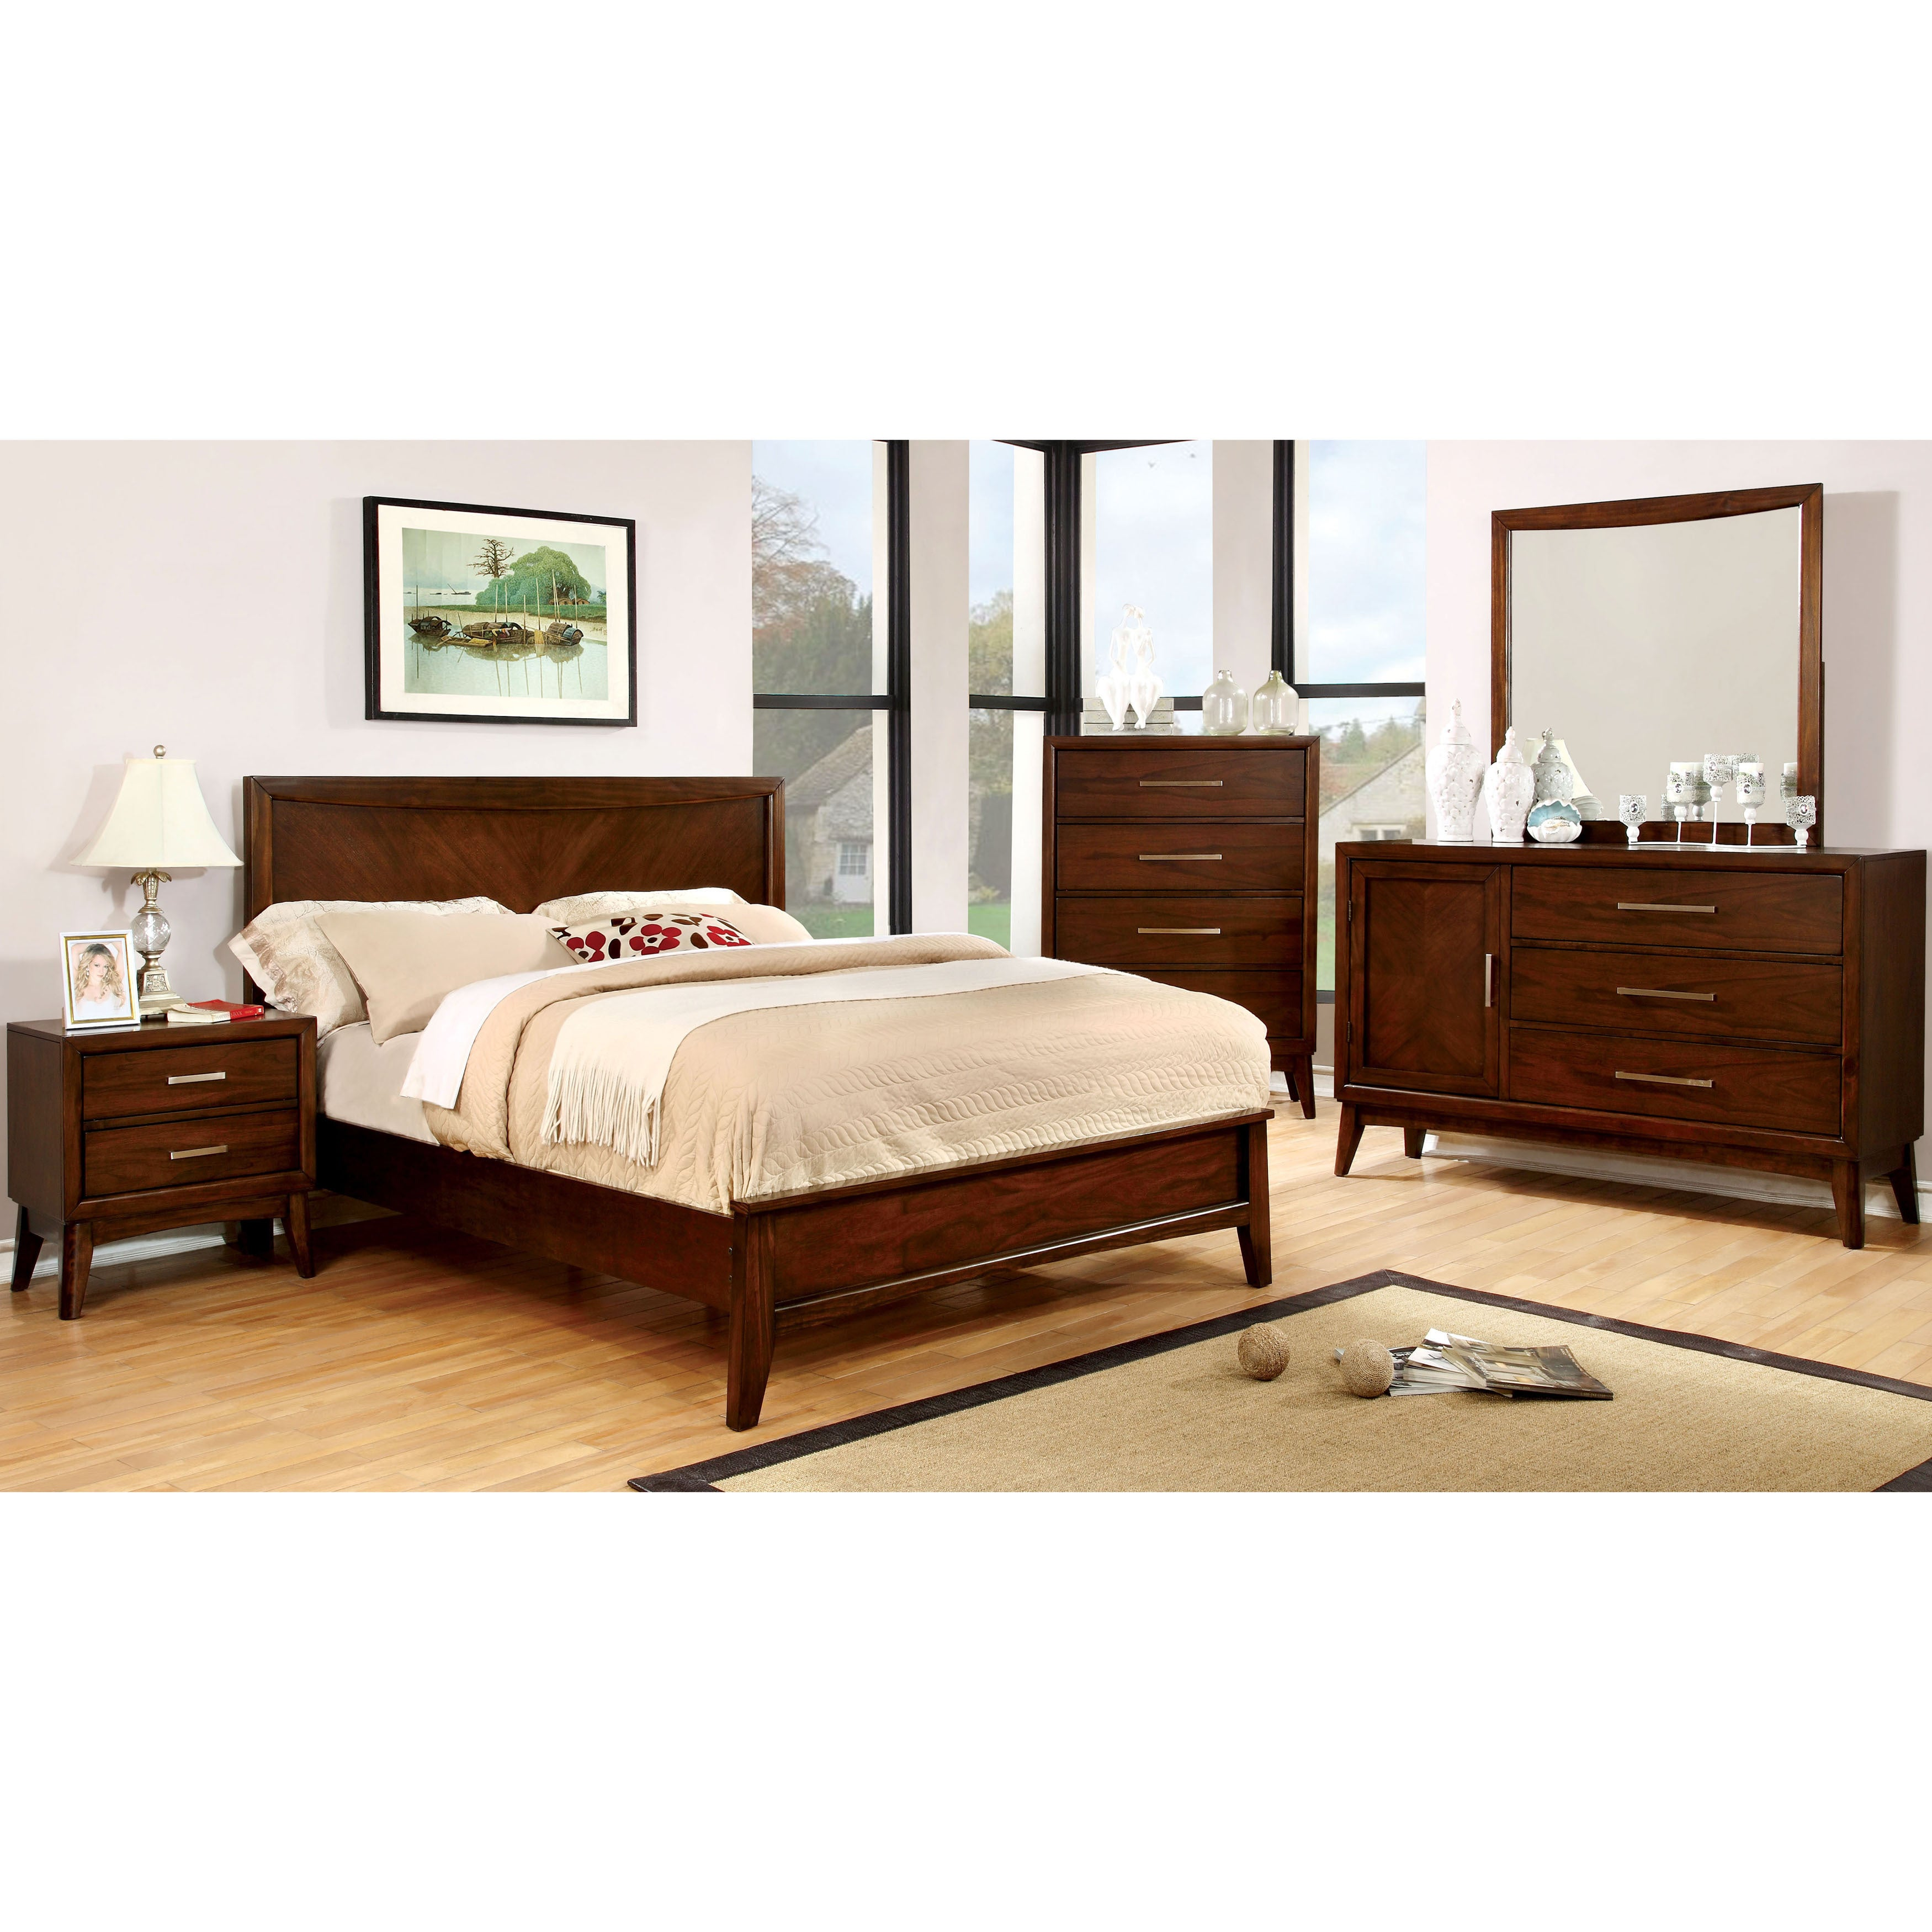 amazing chest bedroom media full weirs features cherry in furniture nightstand size amusing drawer catalog of site louis philippe